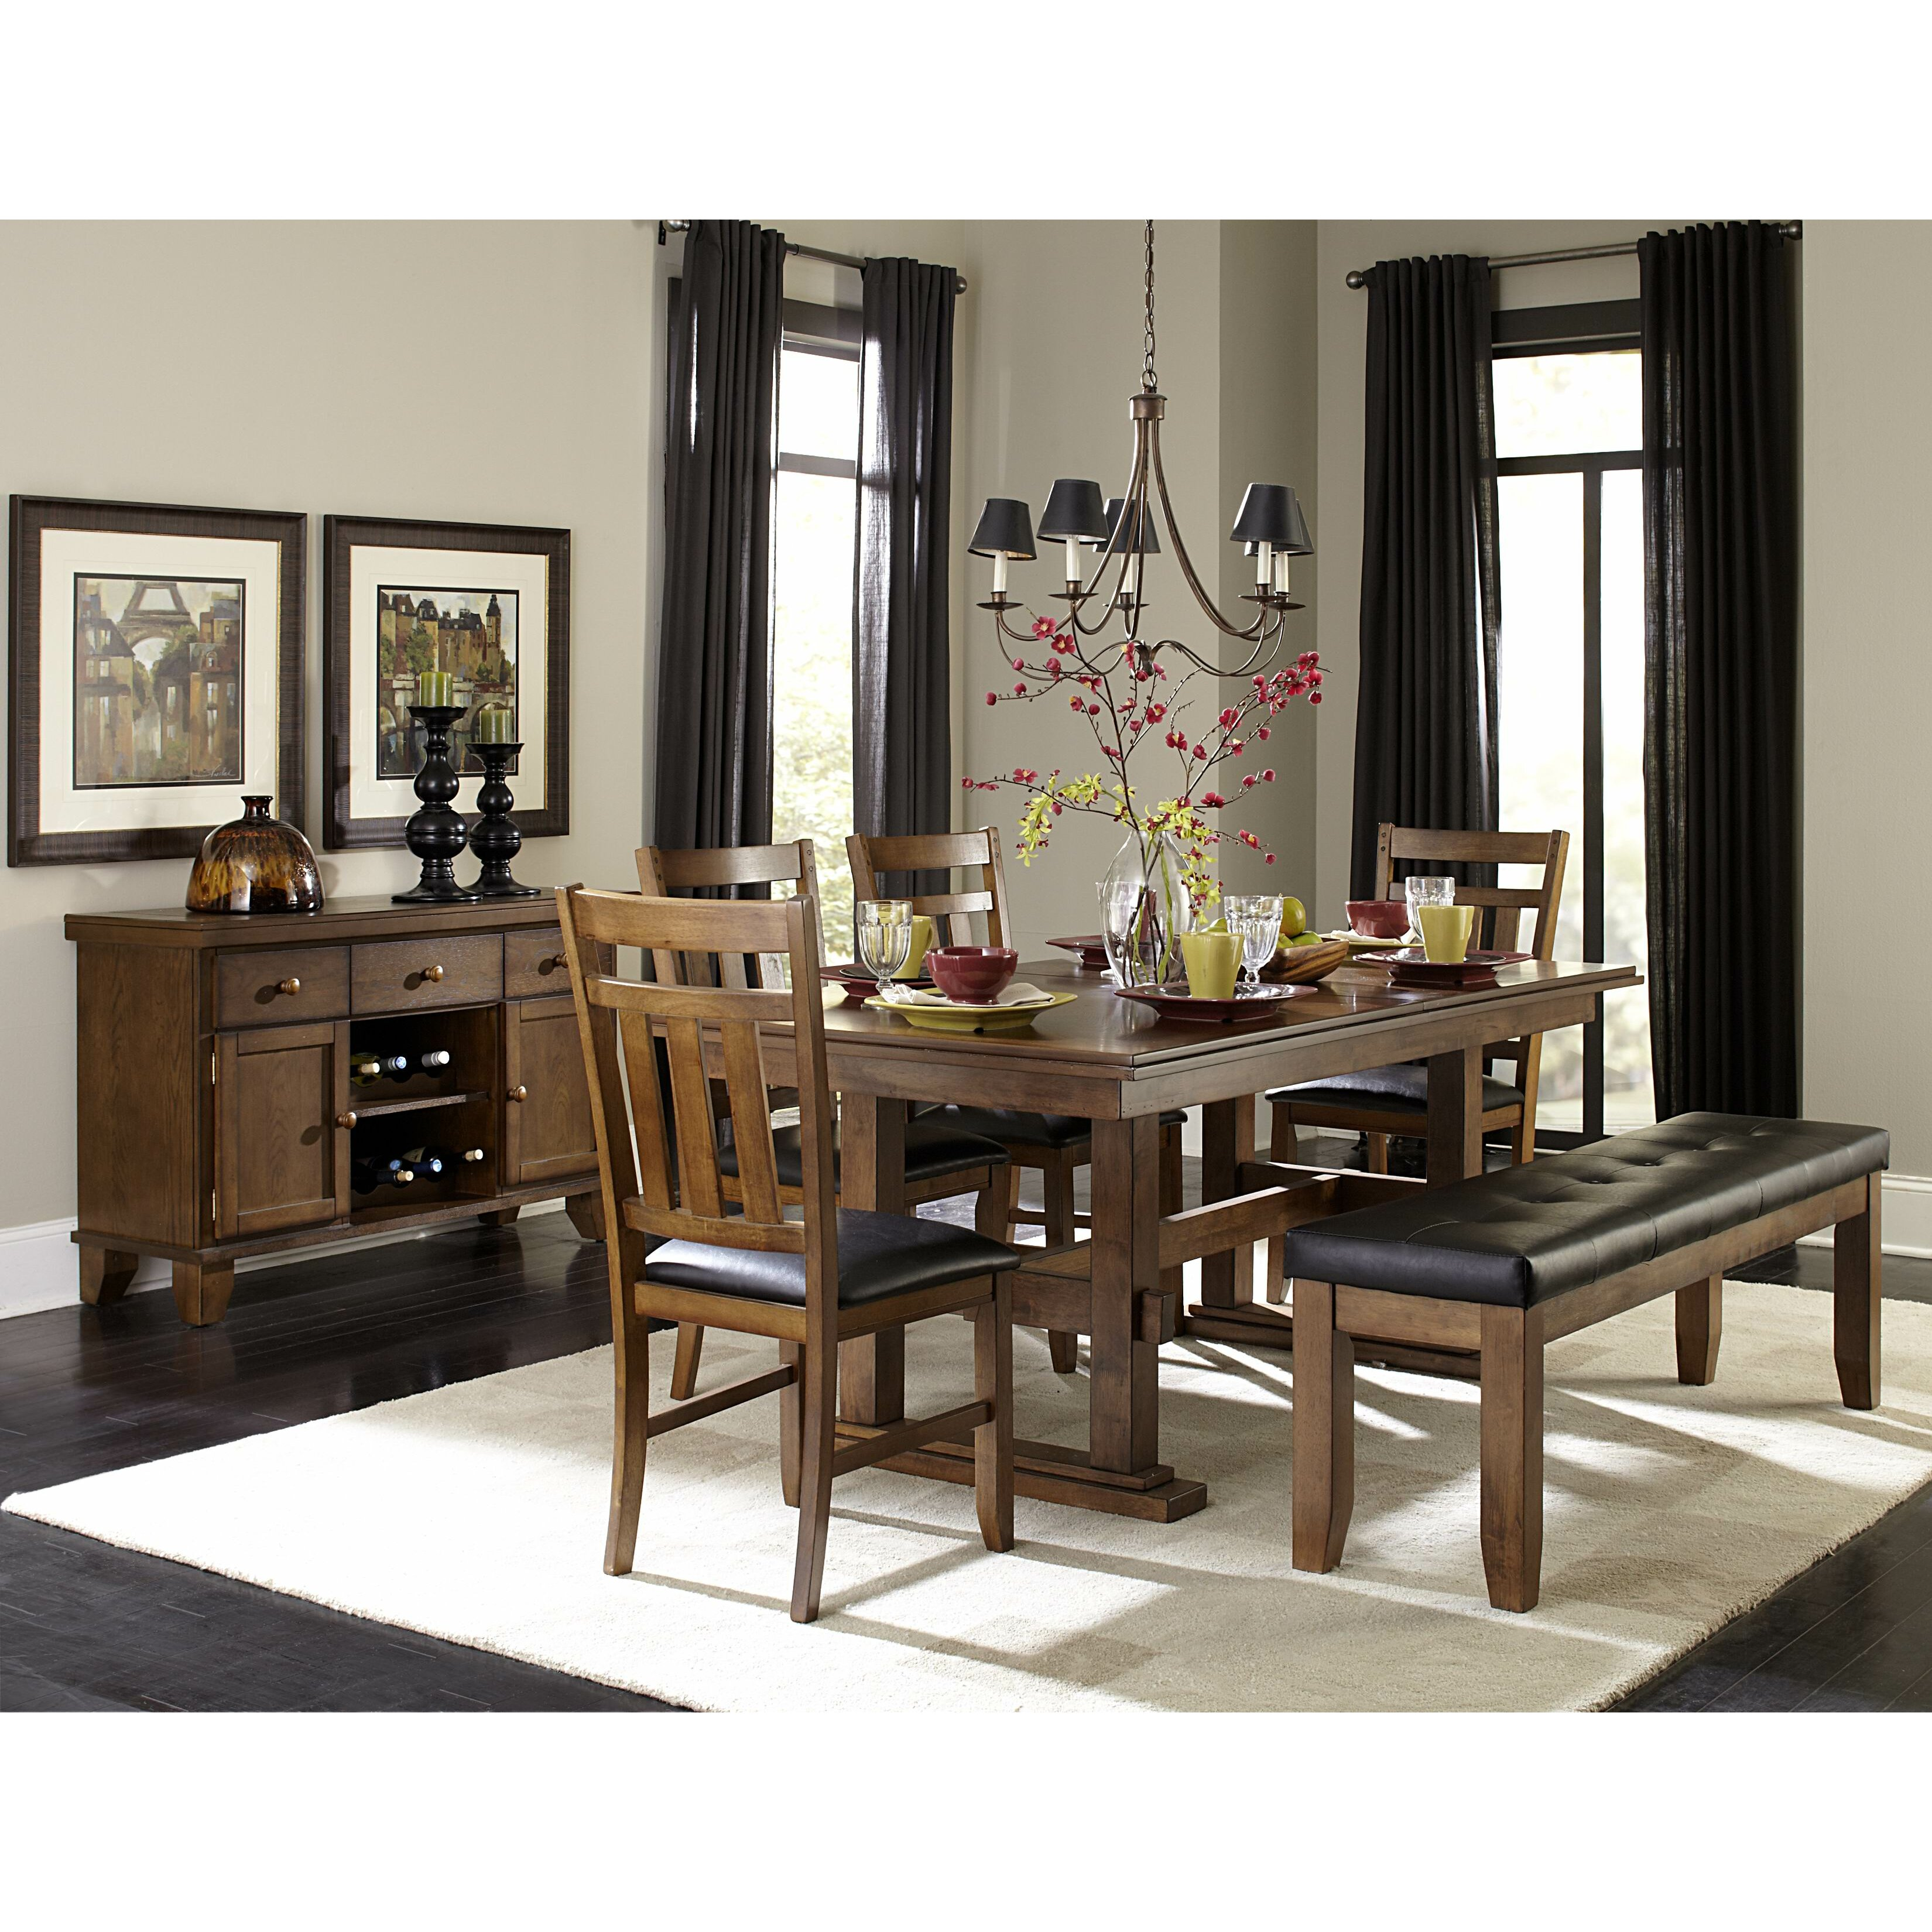 Woodhaven Hill Kirtland Extendable Dining Table amp Reviews  : Woodhaven Hill Kirtland Extendable Dining Table HE7194 from www.wayfair.com size 3300 x 3300 jpeg 1654kB